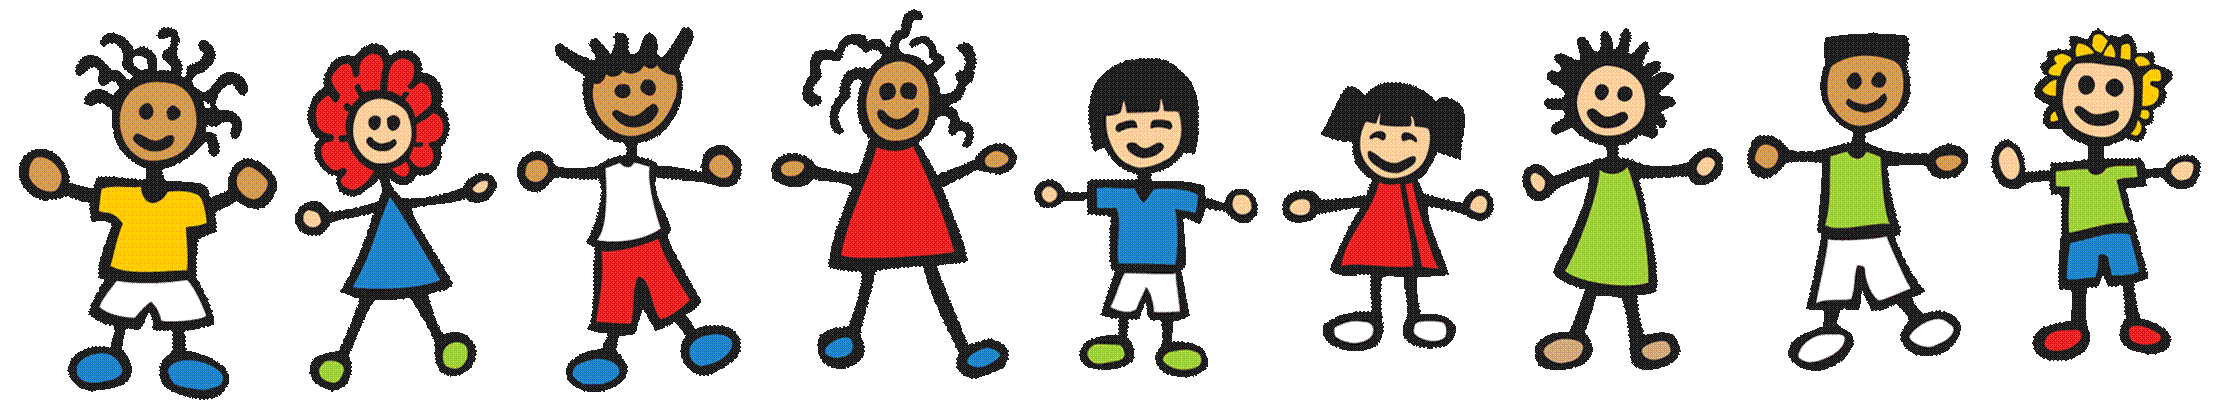 Schedule clipart children's. The power of educational